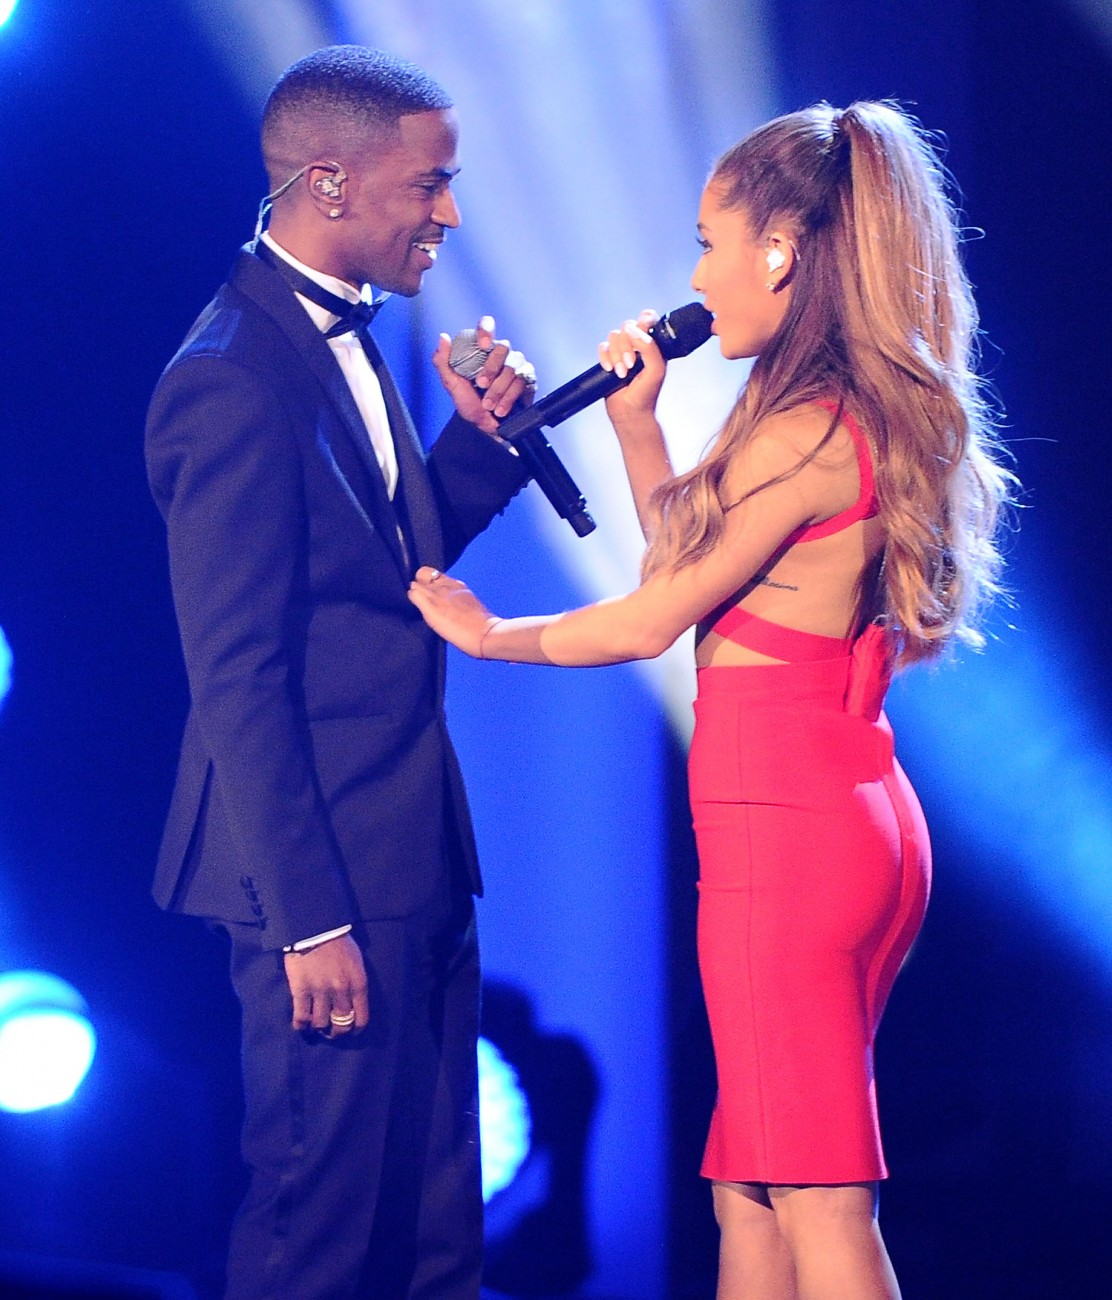 Ariana Grande And Big Sean Look Romantic As Ever Holding Hands, Singing To Each Other